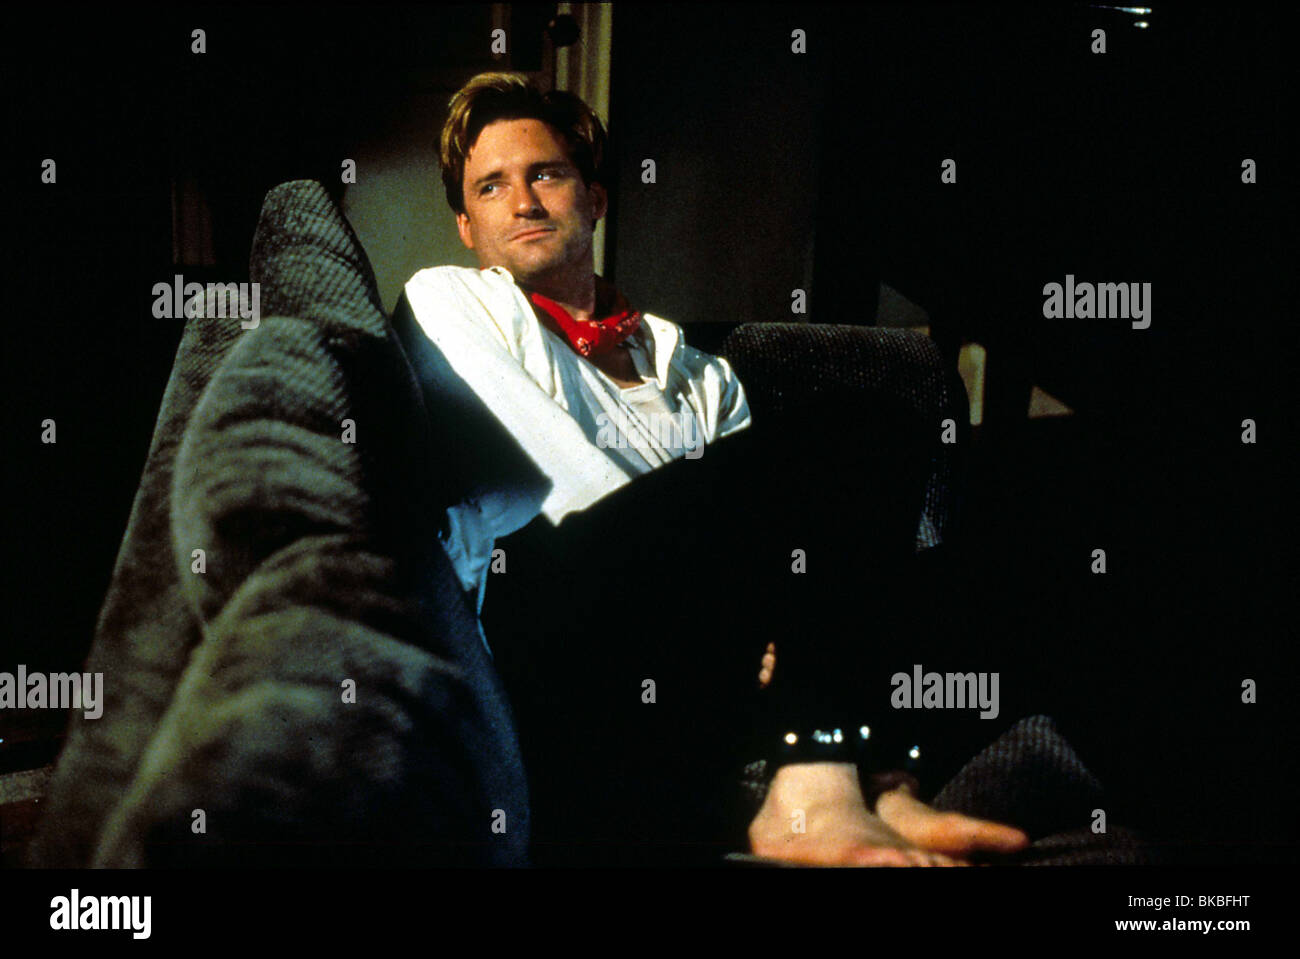 THE LAST SEDUCTION (1994) BILL PULLMAN CREDIT ITC (LISTINGS ONLY) LSED 007 - Stock Image